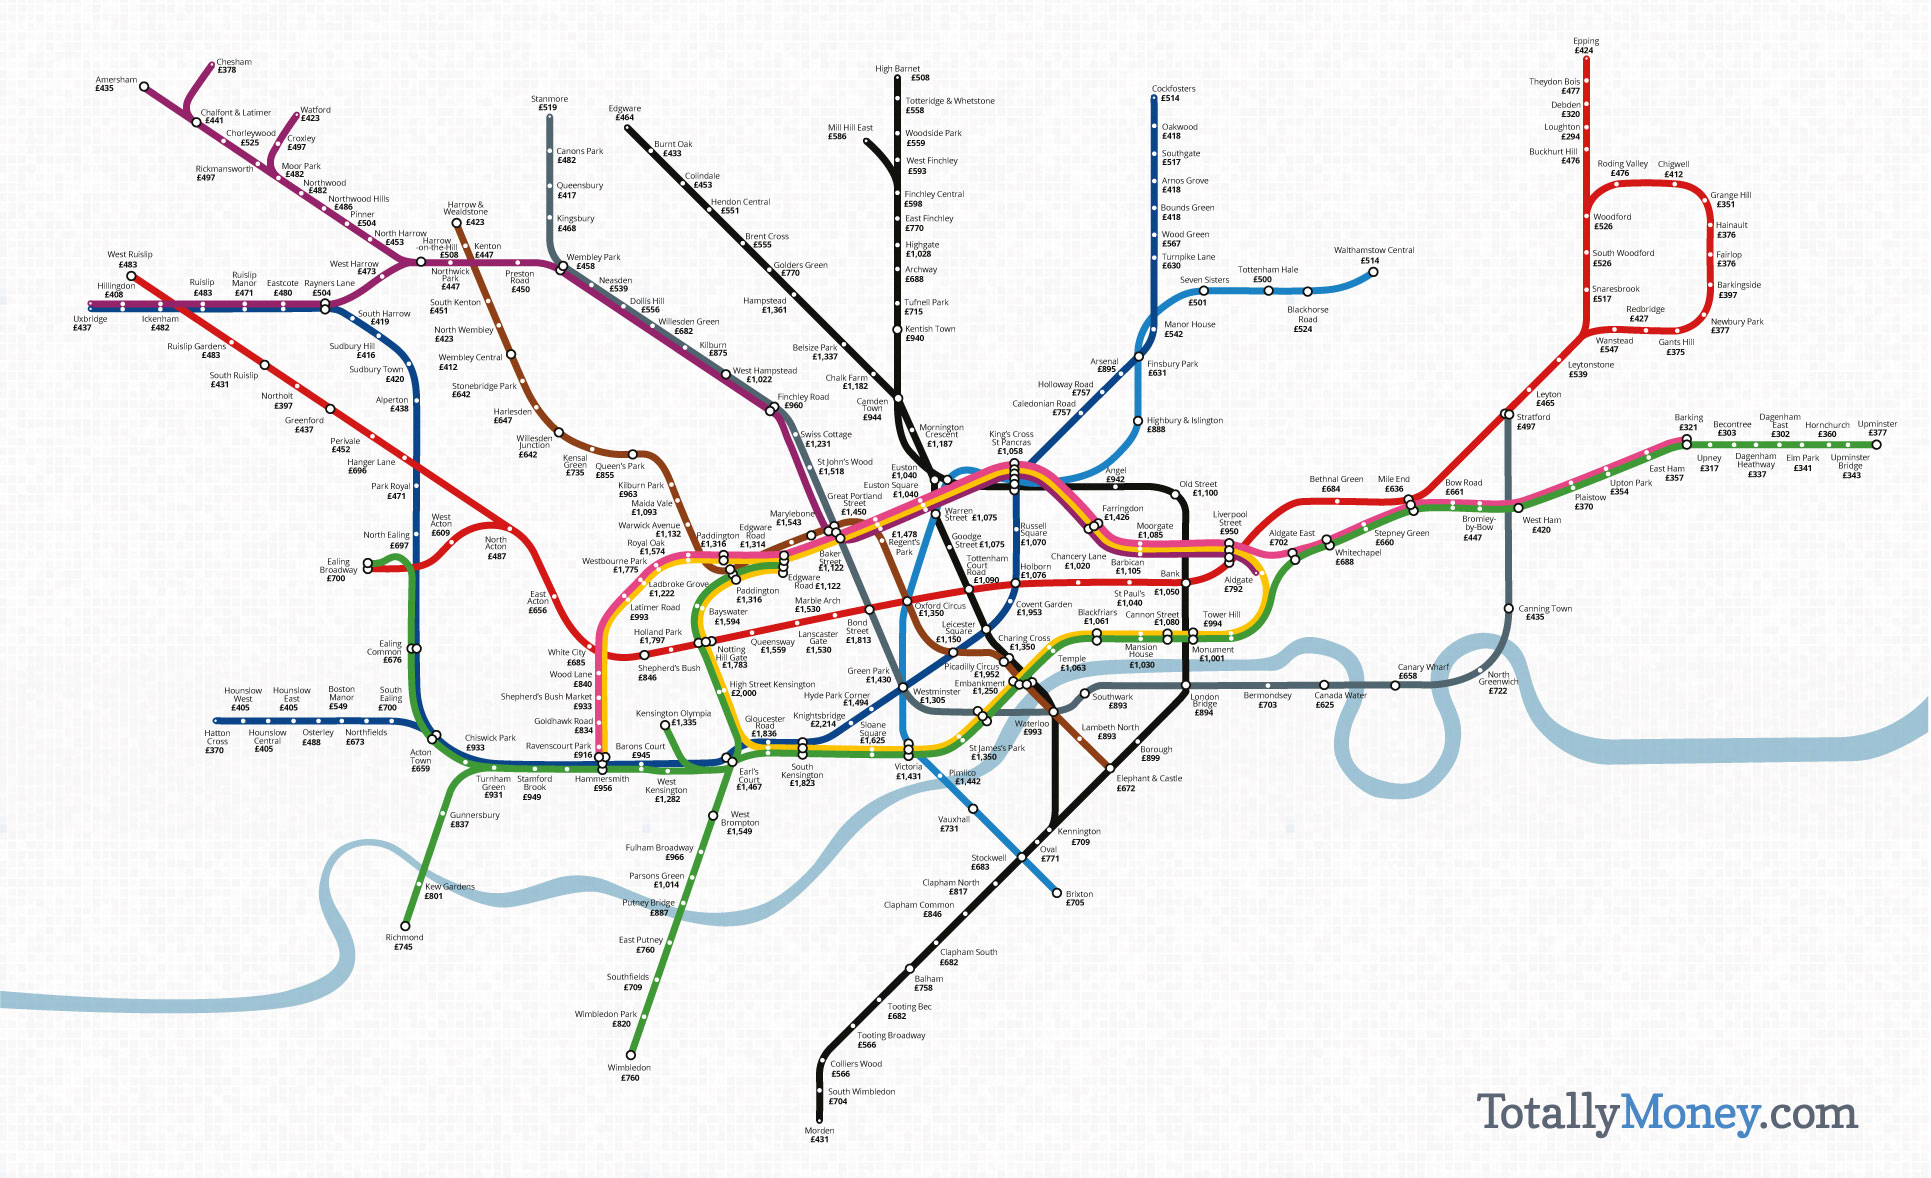 London Underground Subway Map.London Underground Map Shows The Price Per Square Foot Of Property